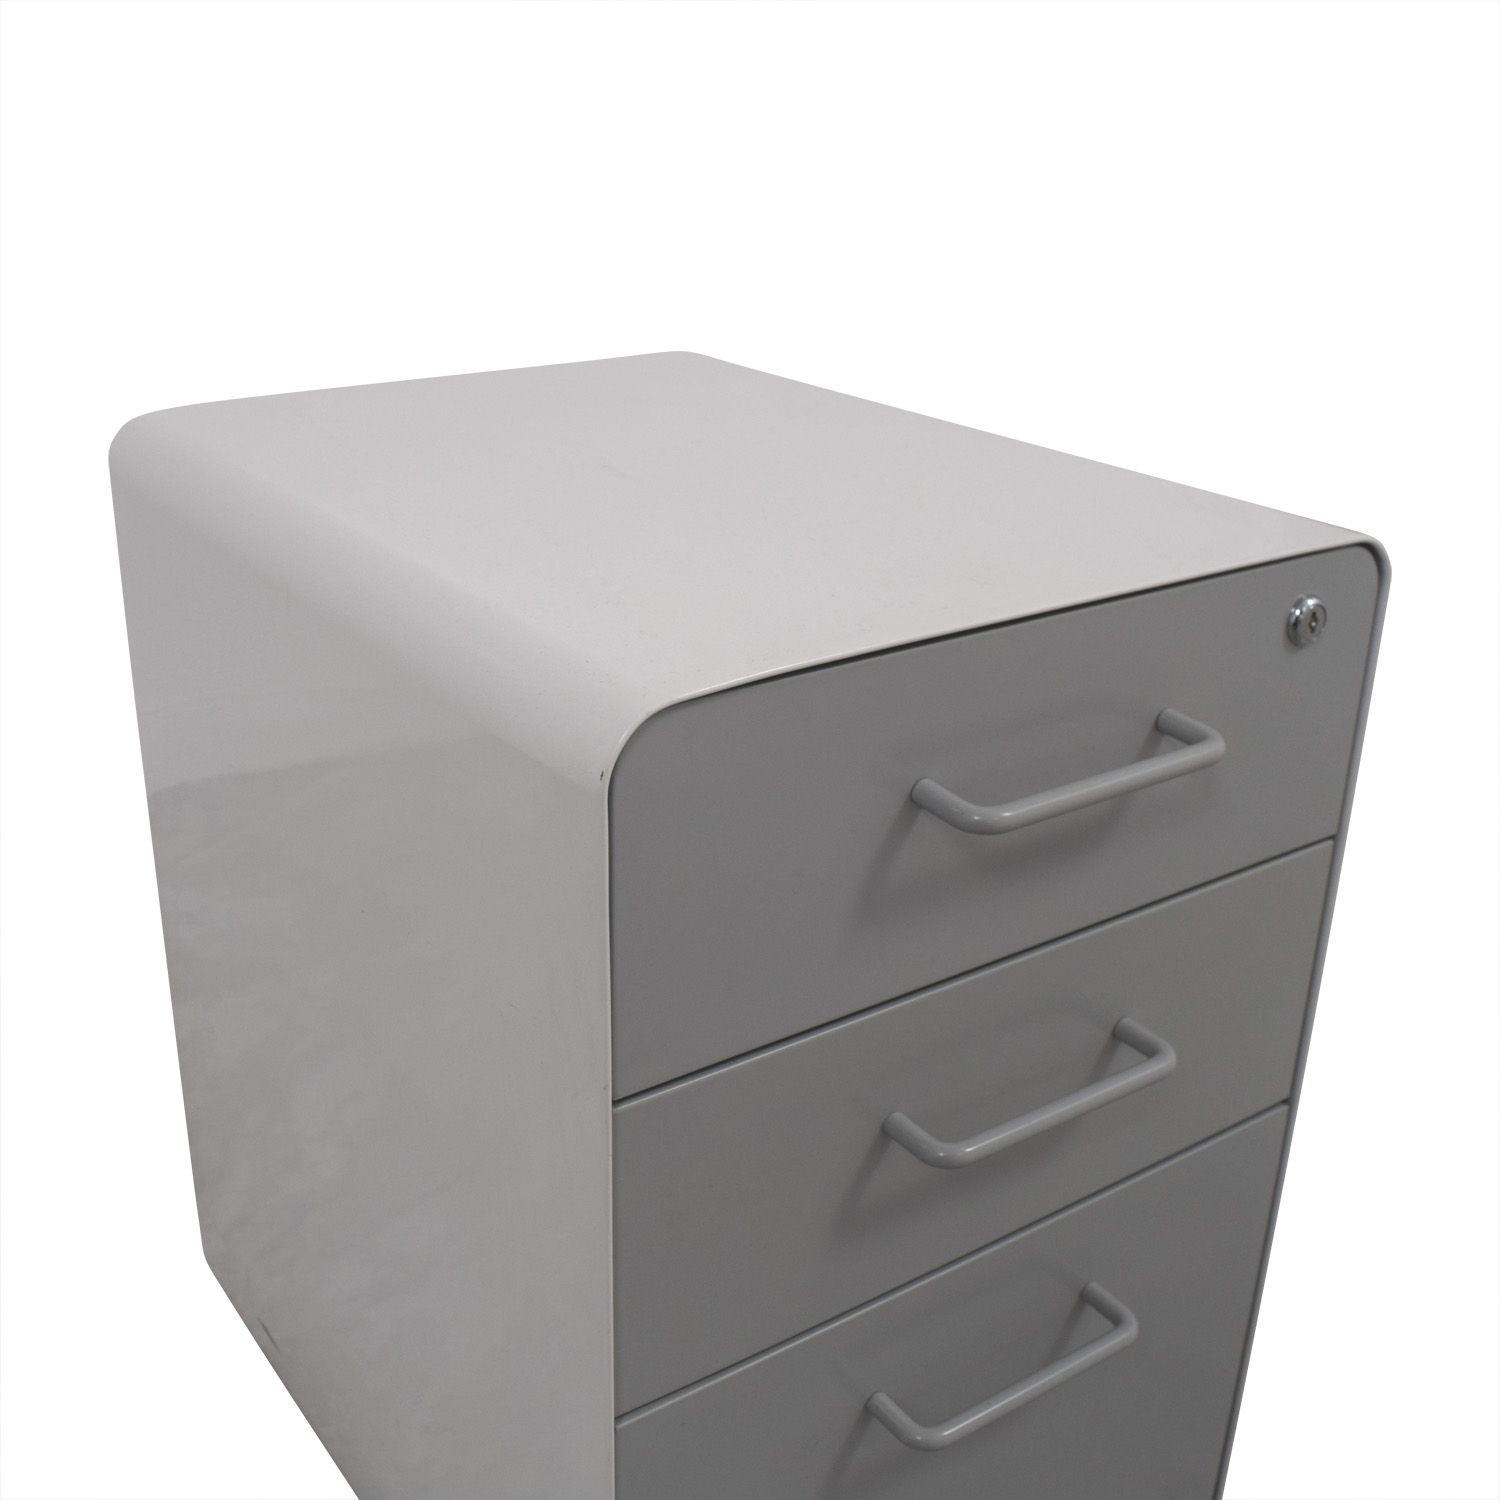 Poppin Poppin Light Grey and White Three-Drawer File Cabinet price